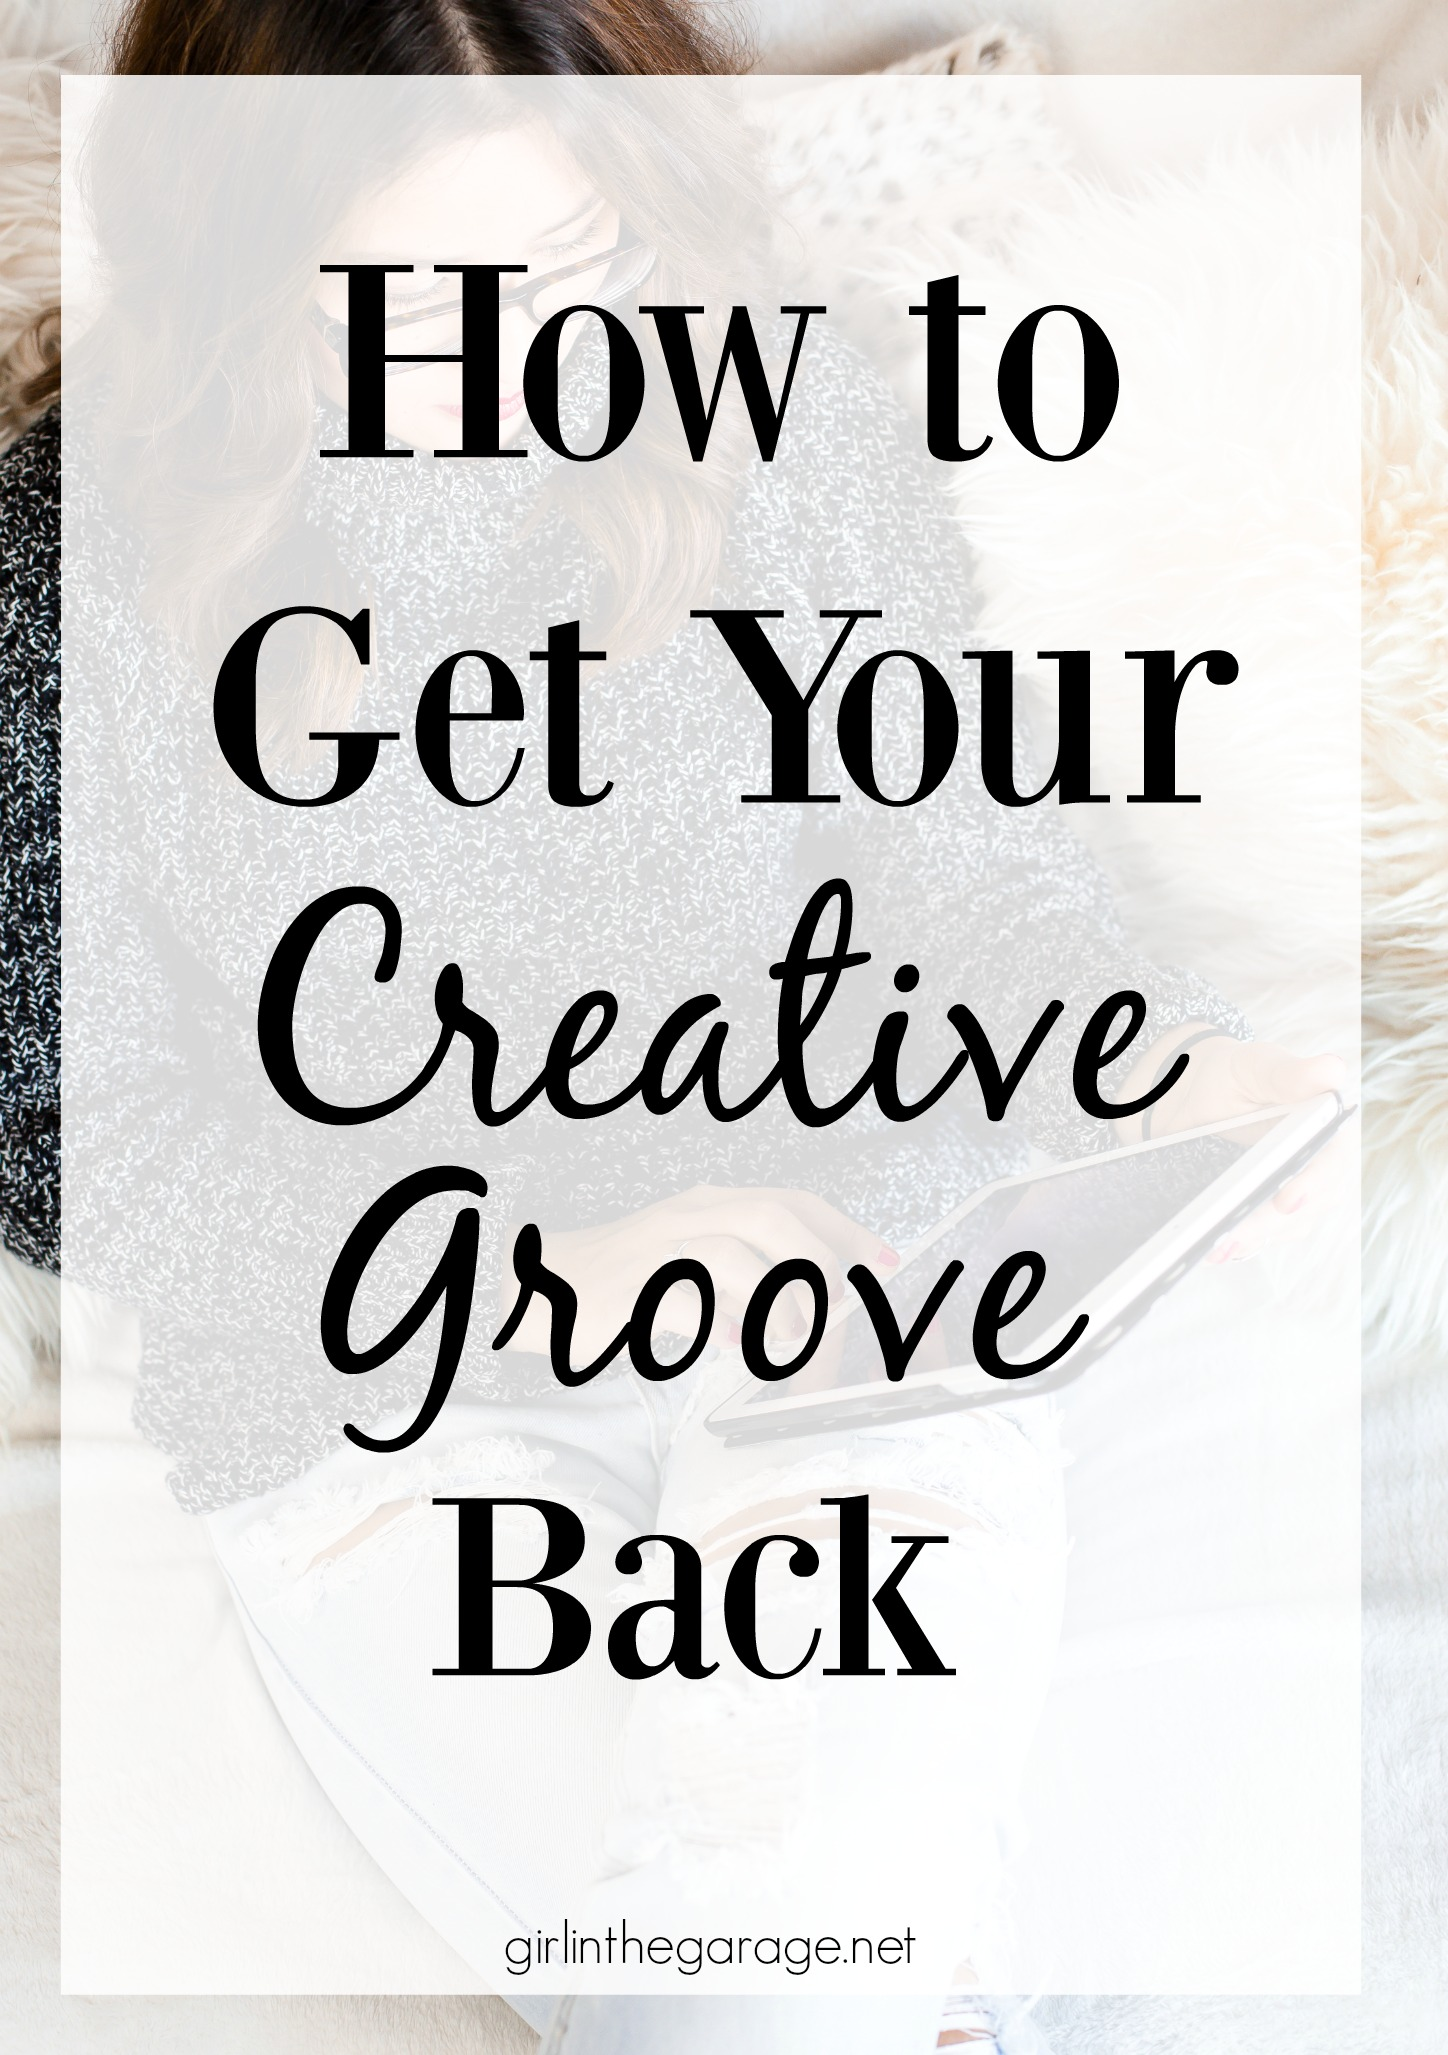 How to get your creative groove back - Girl in the Garage